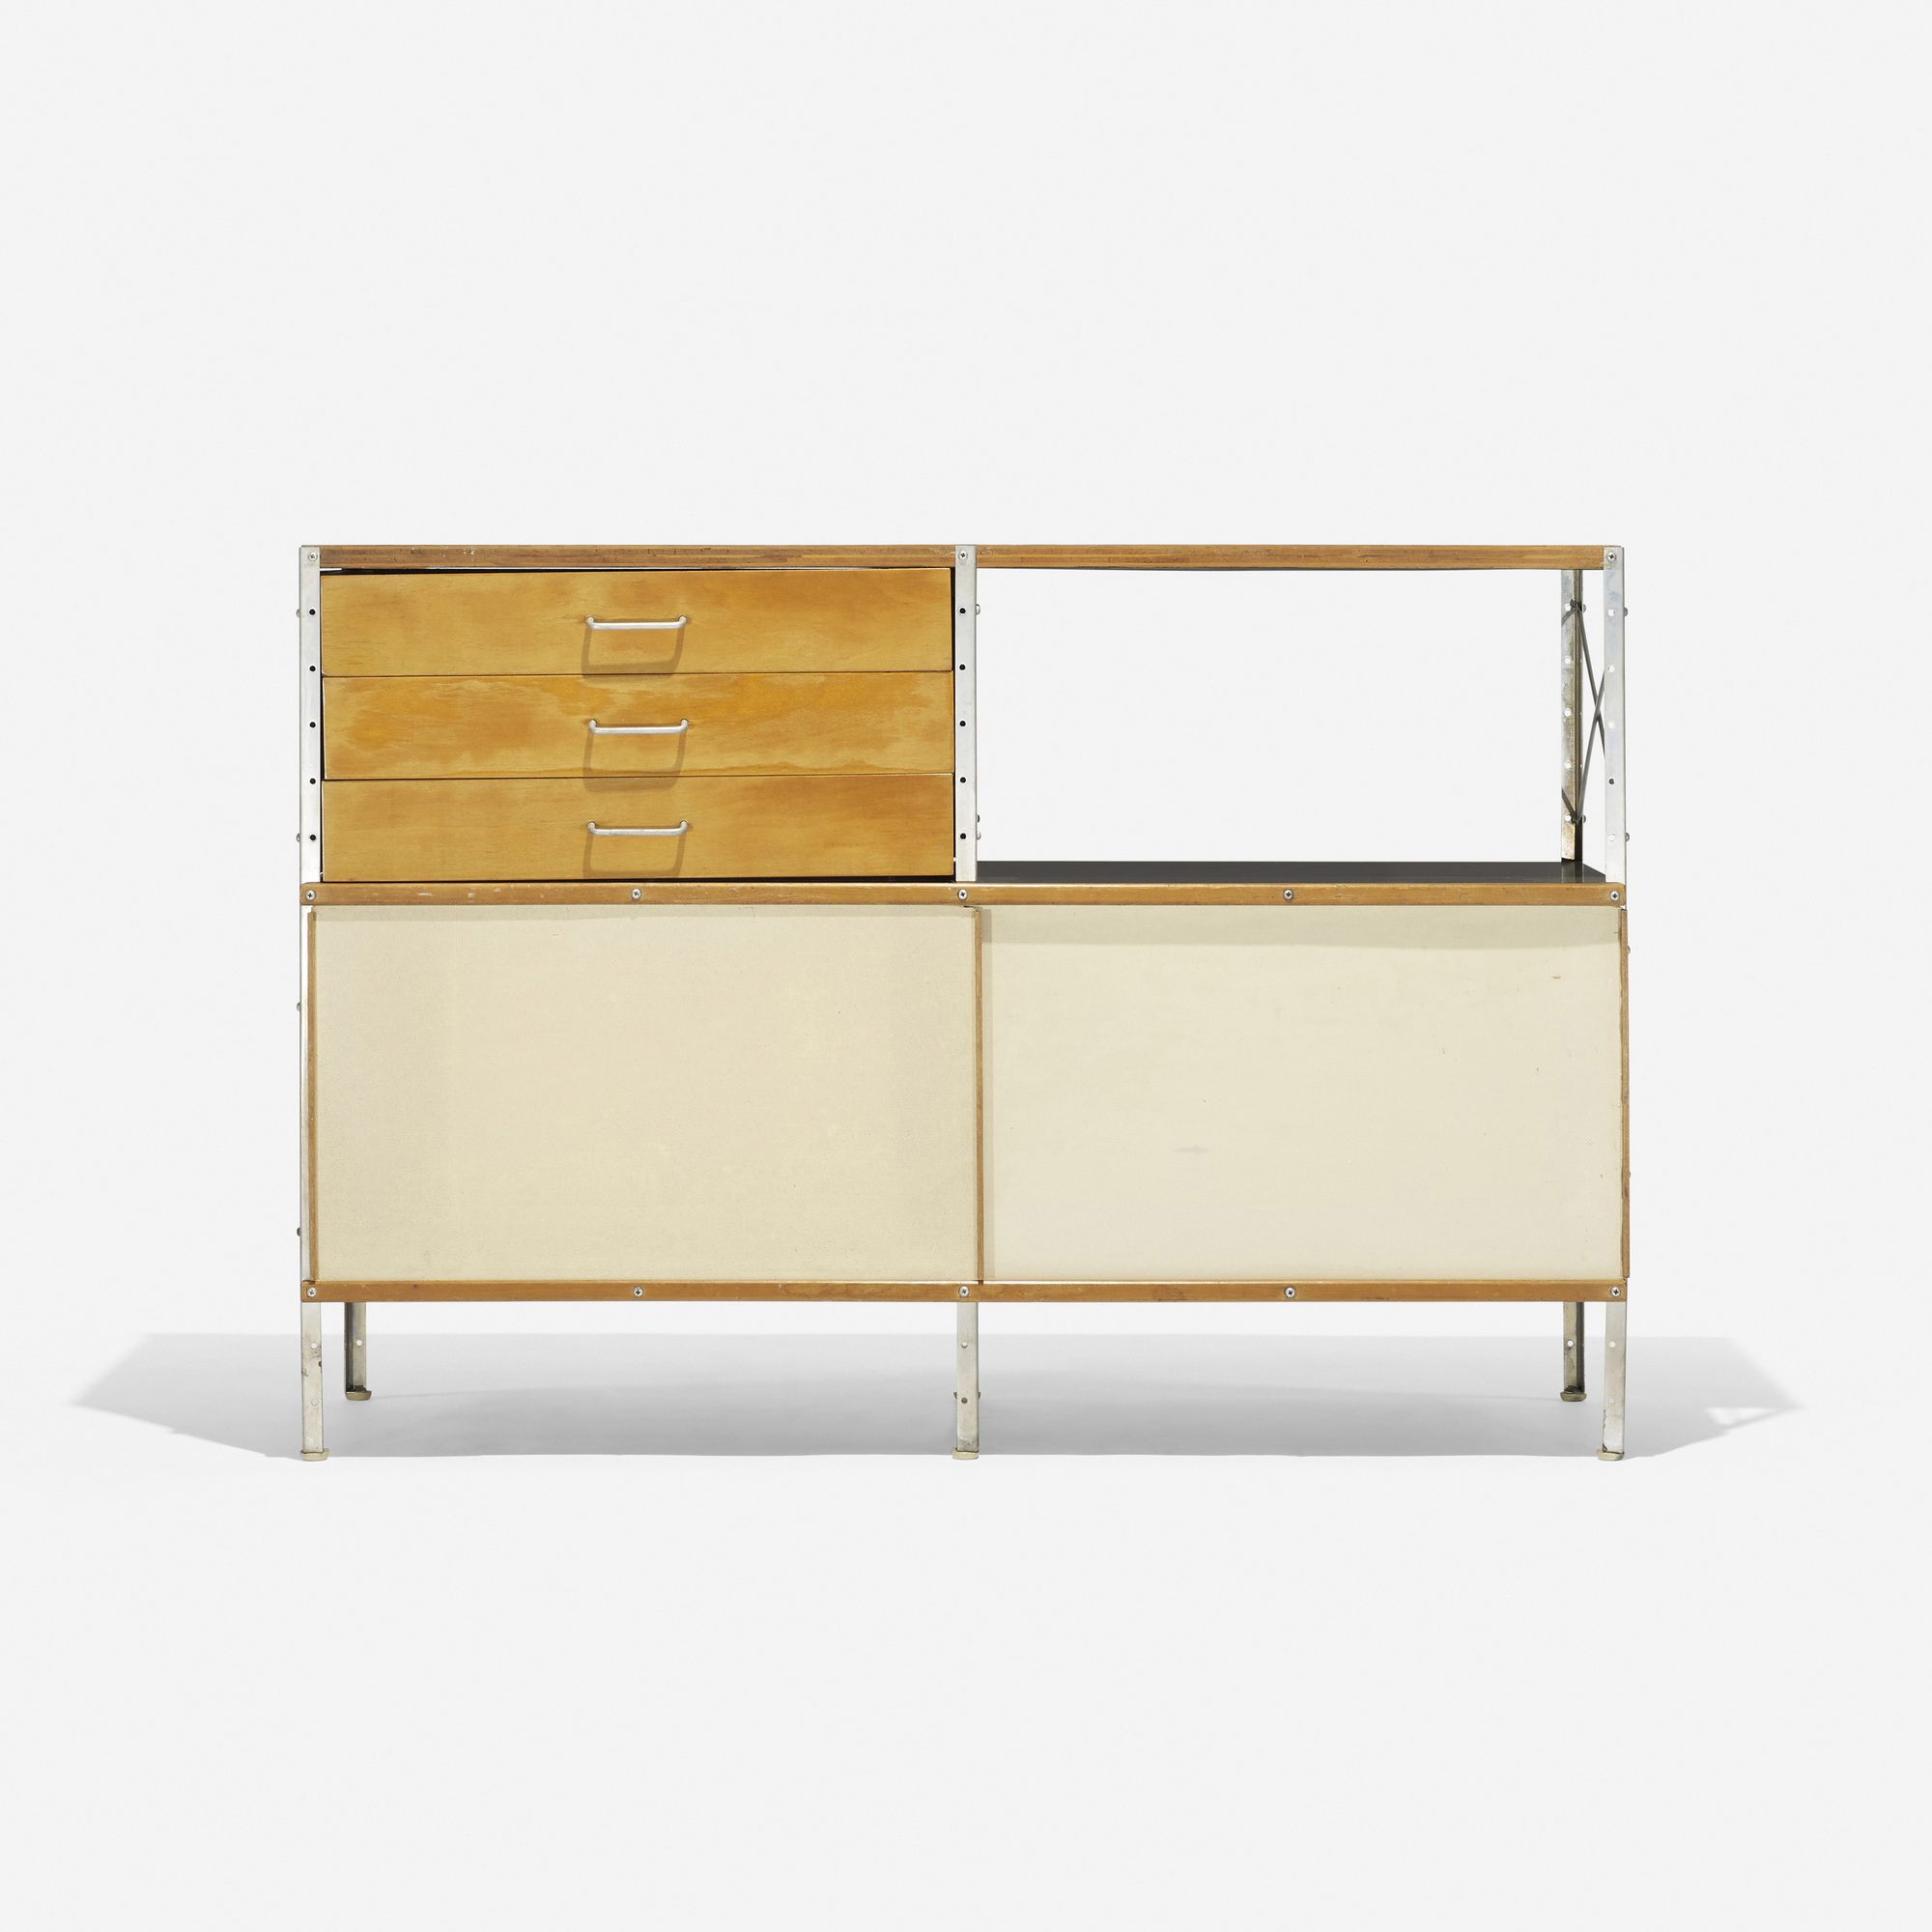 342: Charles and Ray Eames / ESU 200-C (2 of 4)